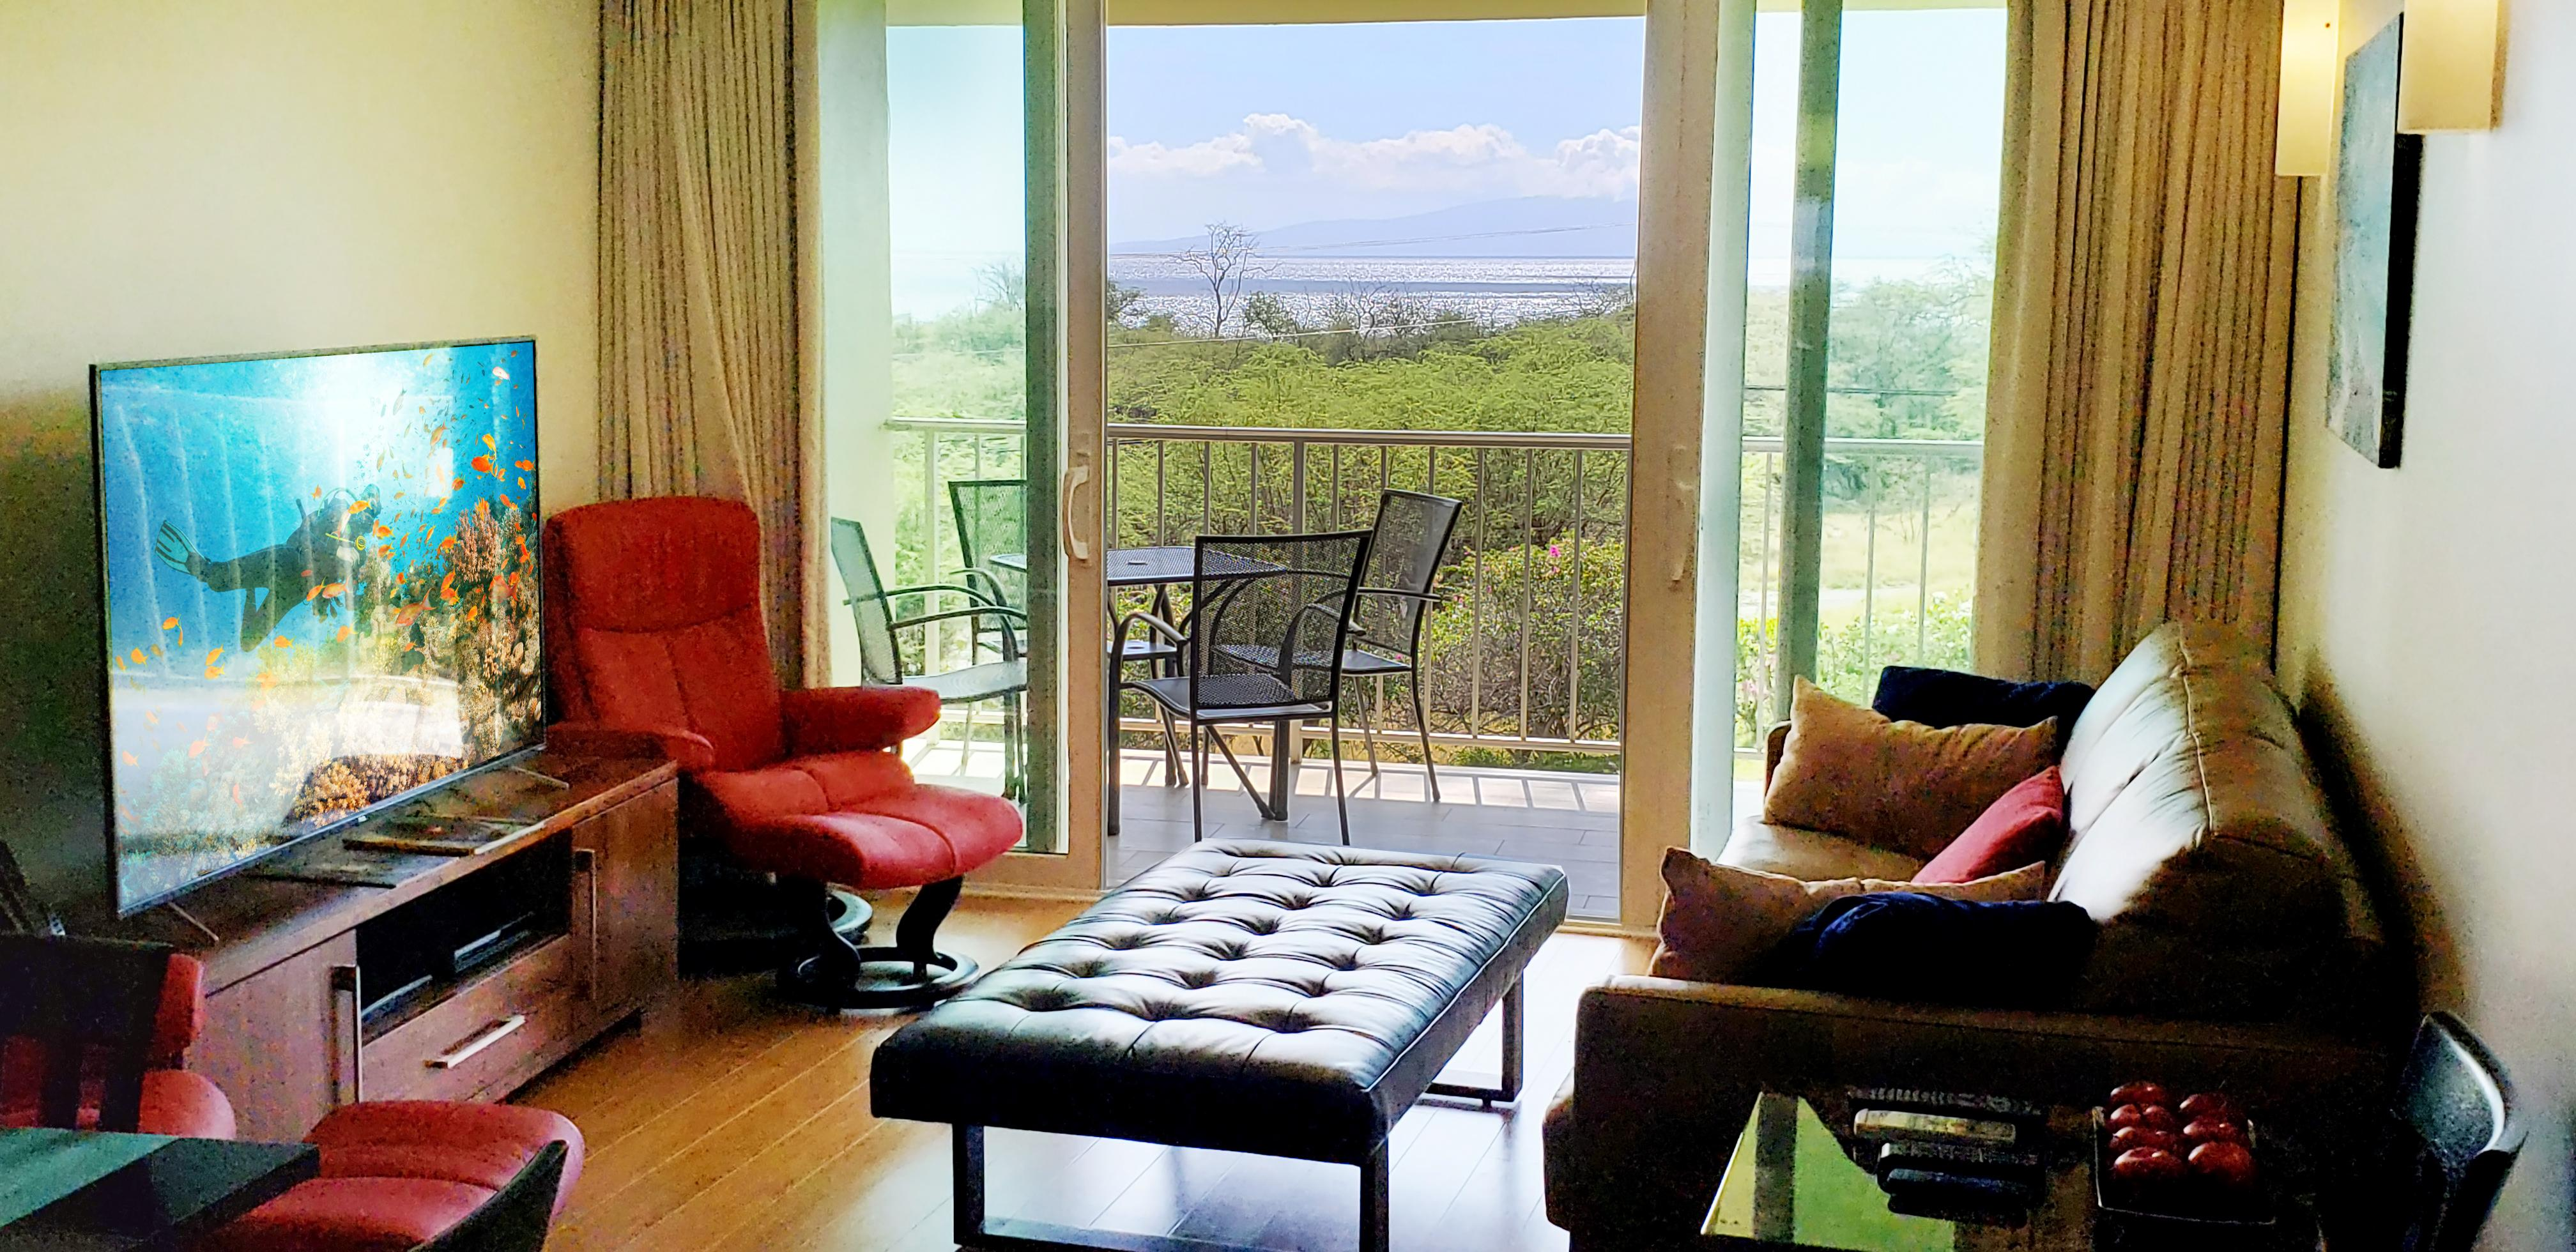 Step outside to take in ocean views and enjoy the lush landscape from your private balcony.